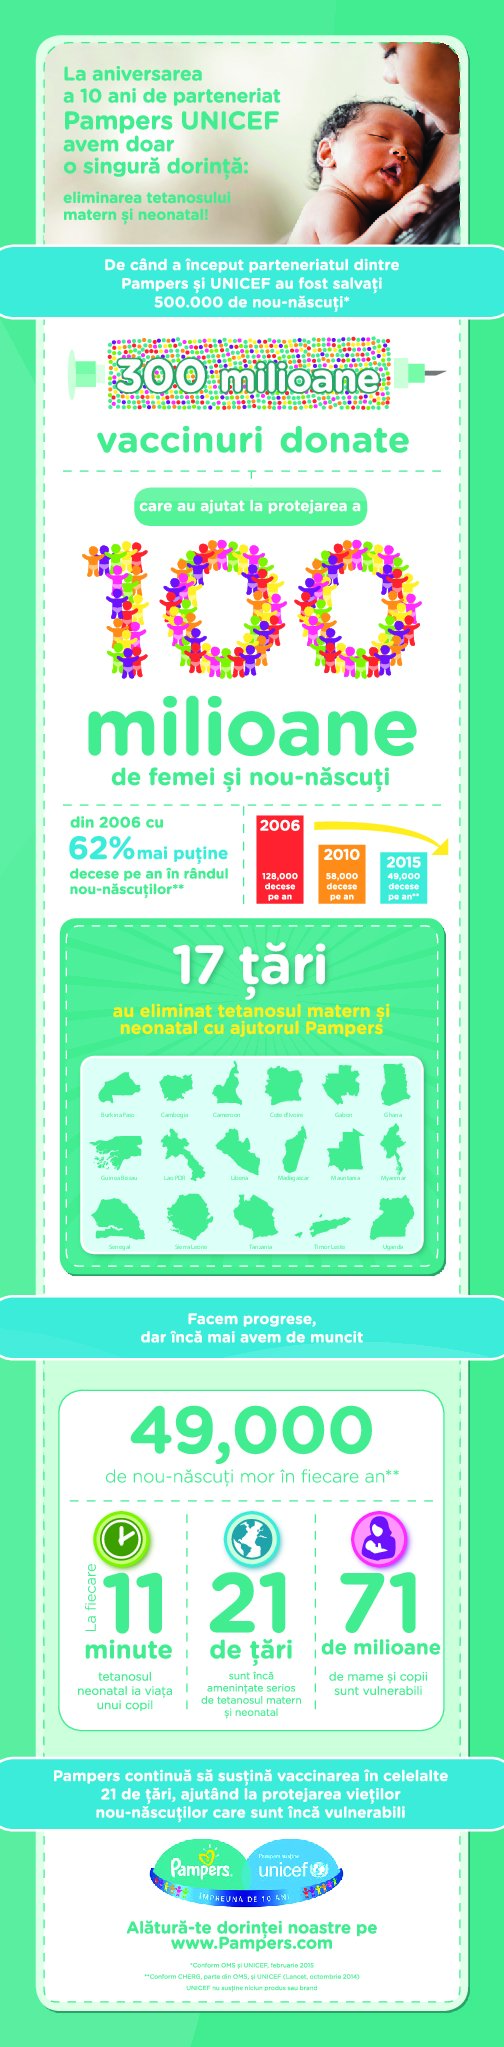 Pampers-infografic